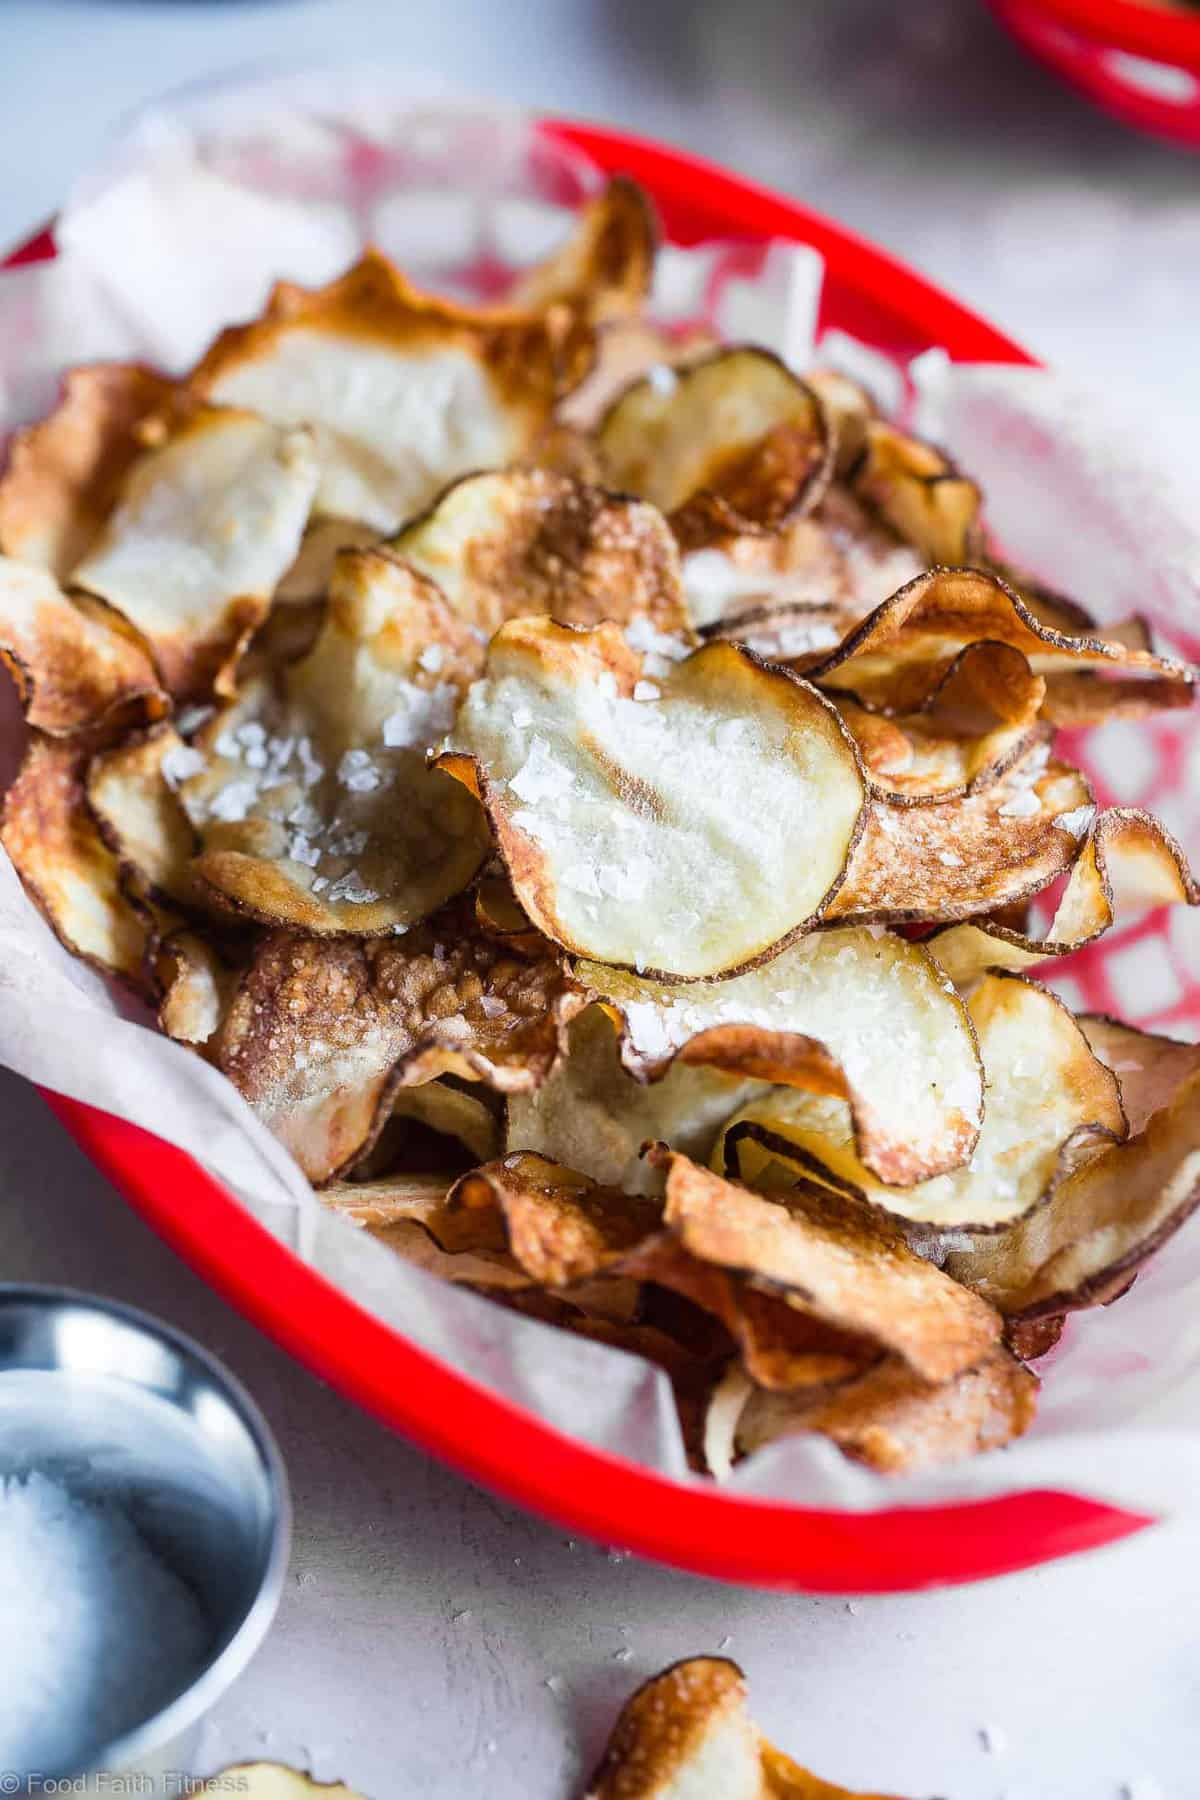 Air Fryer Potato Chips -These EASY Air Fryer Potato Chips are perfectly crispy and crunchy and only use 2 ingredients! You'll never believe they are healthy, vegan, gluten free and only 75 calories for a large serving!   #Foodfaithfitness   #Glutenfree #Airfryer #Healthy #Vegan #CleanEating